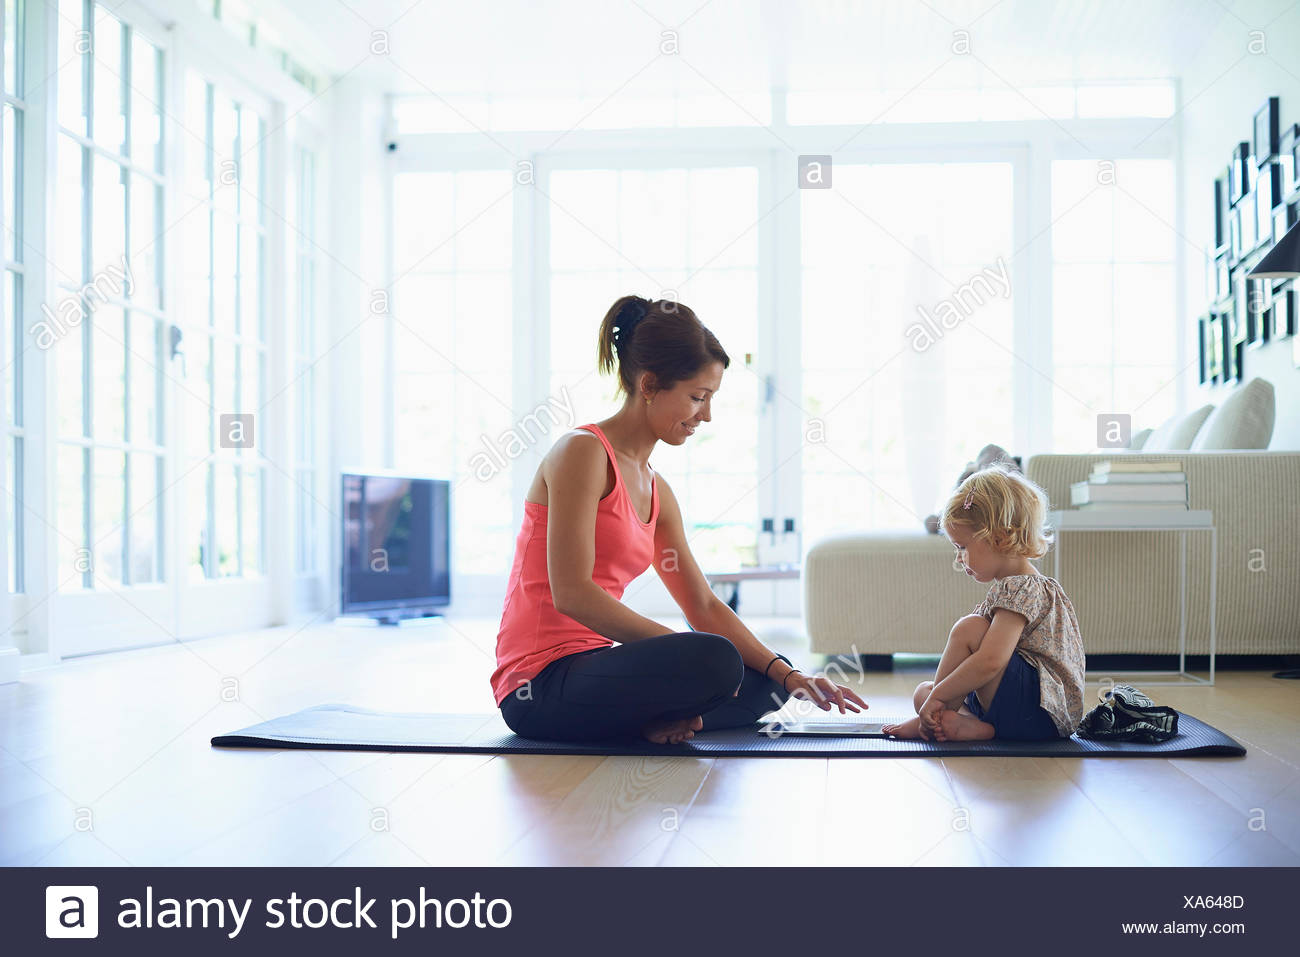 Mid adult mother and toddler daughter practicing yoga in living room - Stock Image